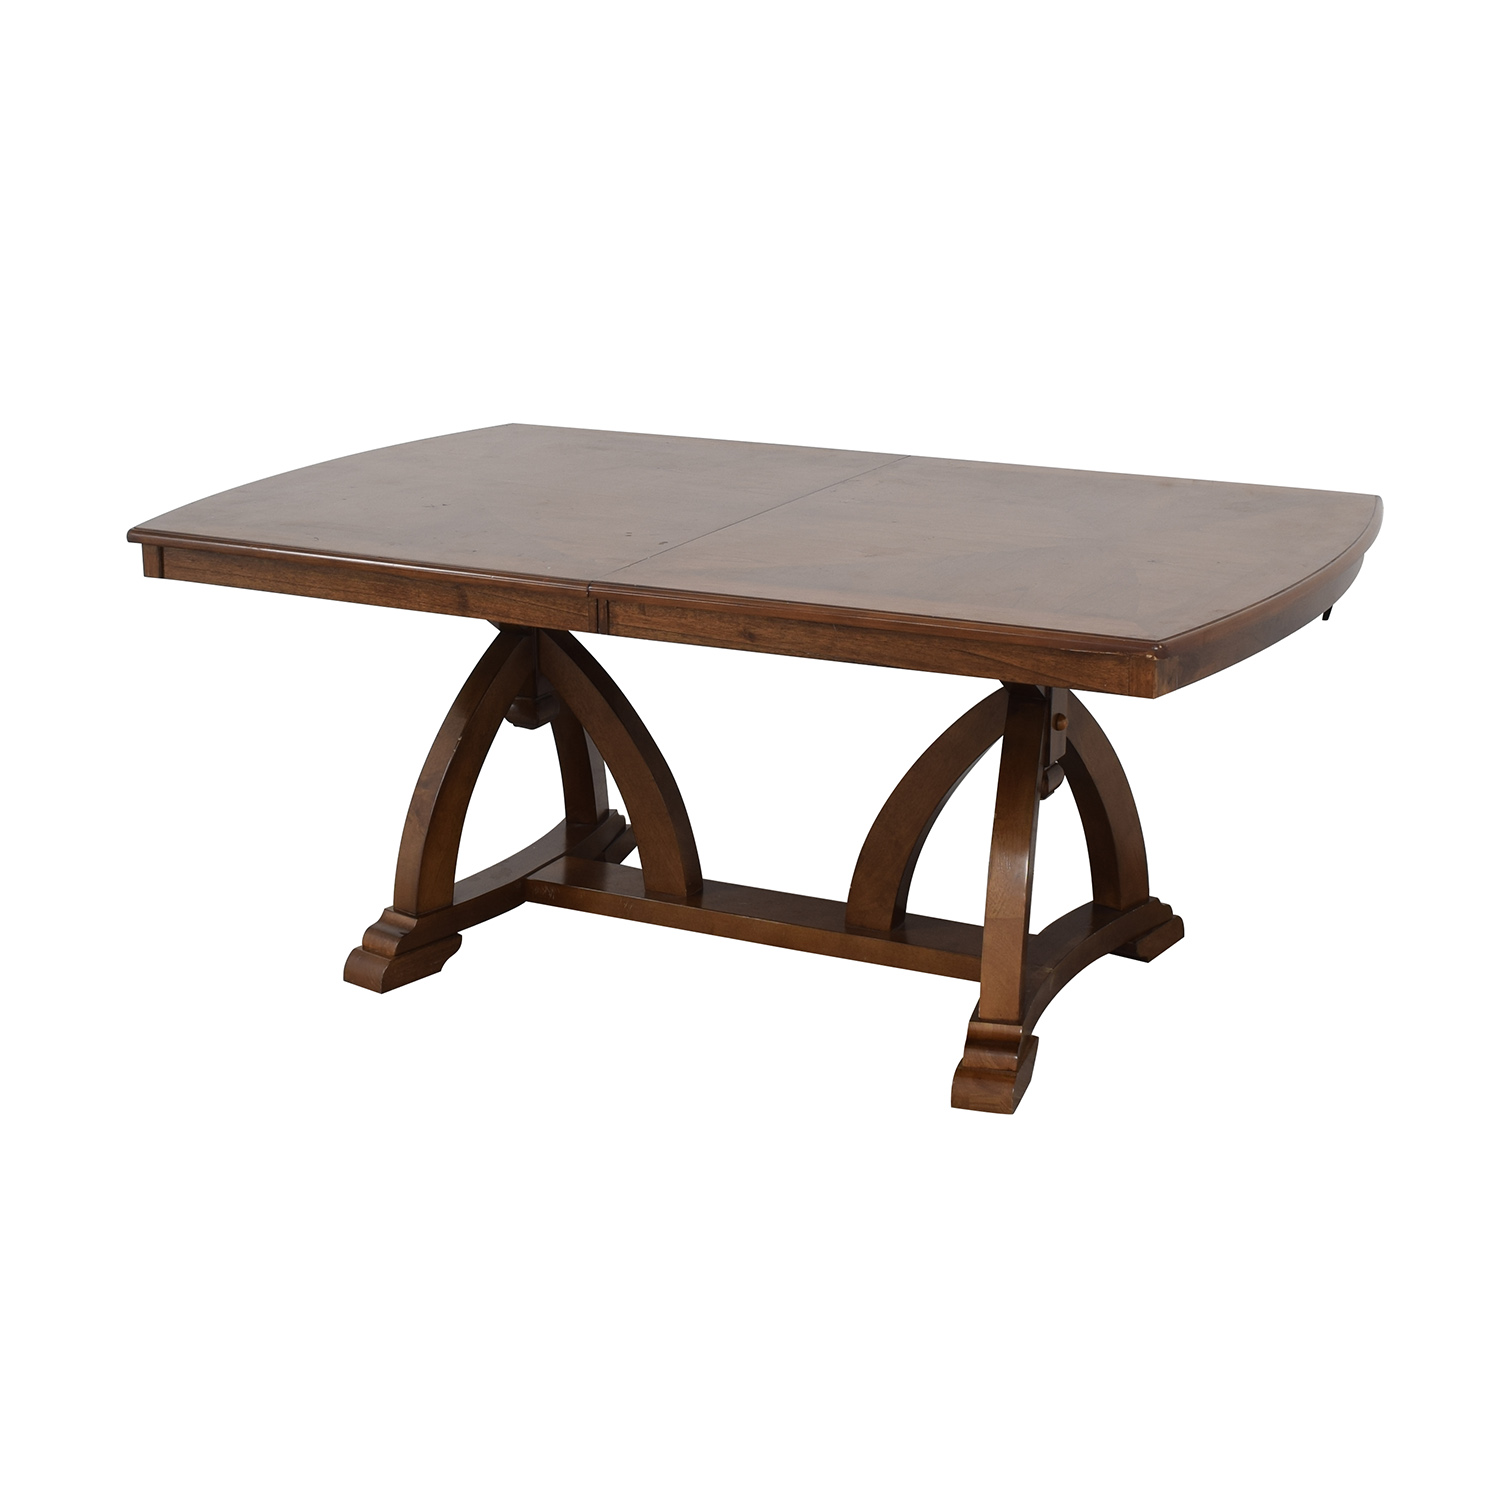 Raymour & Flanigan Raymour & Flanigan Wood Expandable Dining Table price